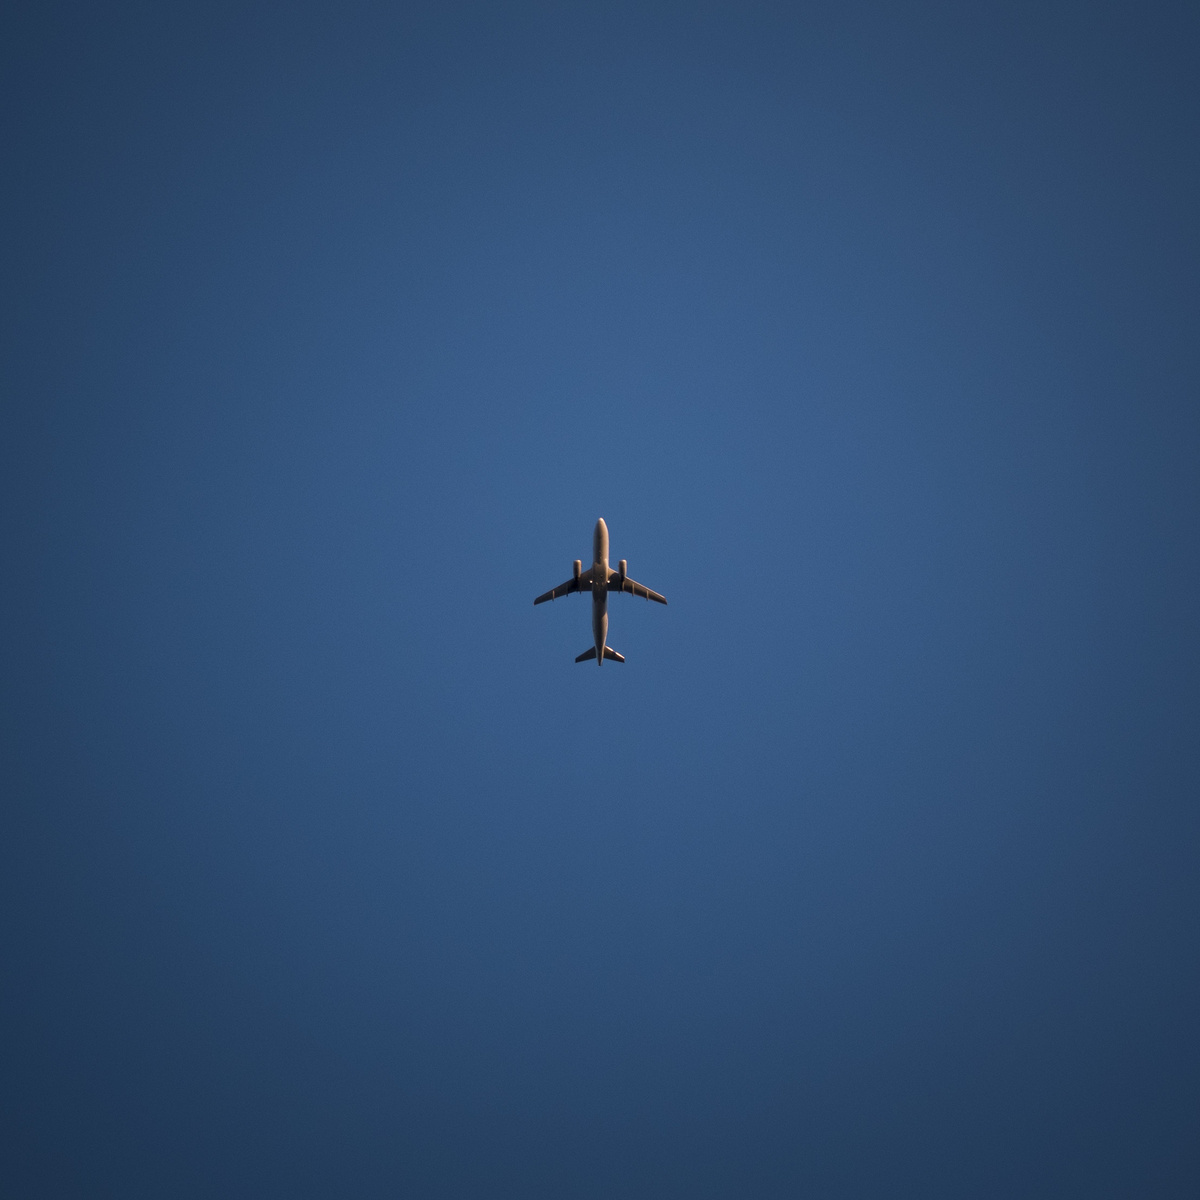 overhead flight